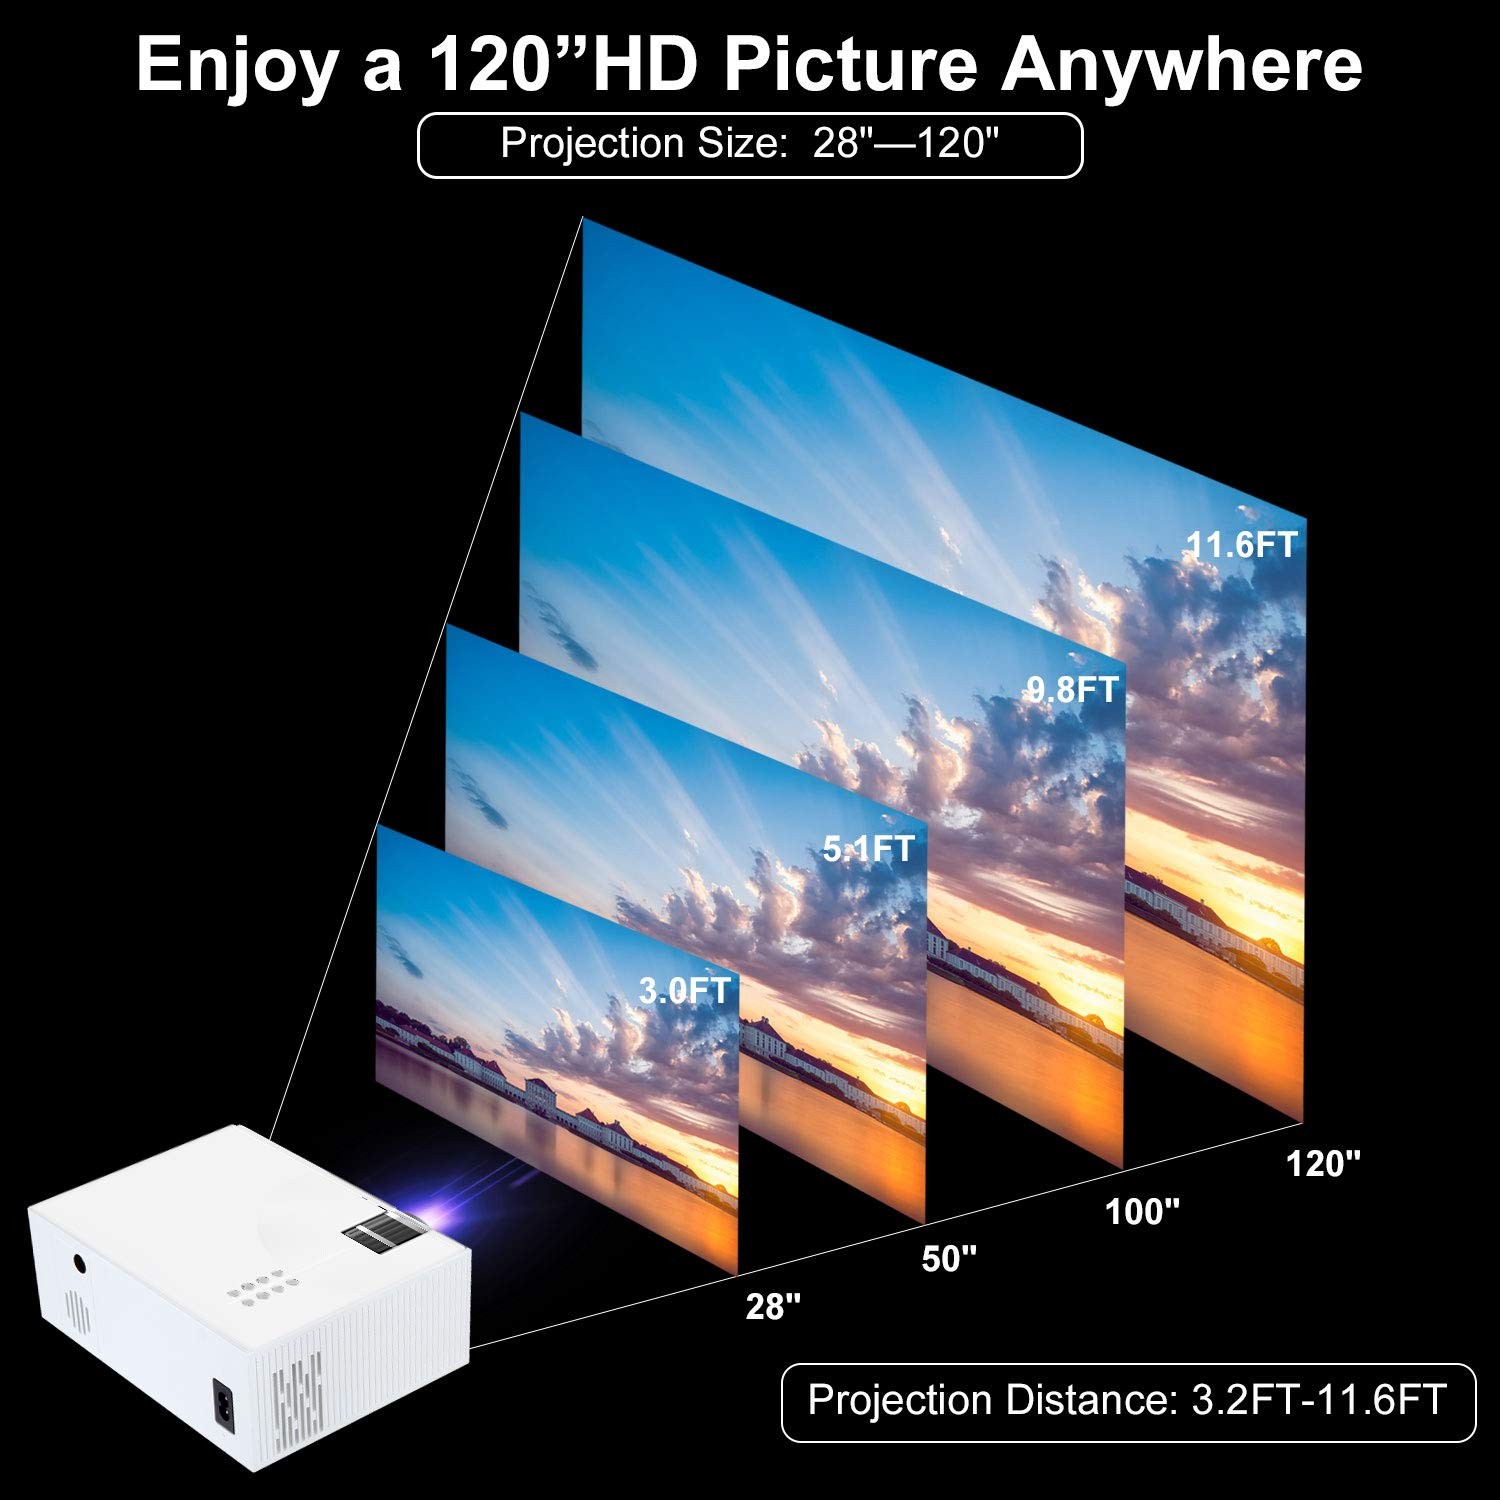 Projector, Queretek Video Projector 2800Lux WiFi Direct, HD Projector Mini Home Theater Projector Support 1080P, with HDMI Cable USB VGA AV, Compatible Laptop Tablet Smartphone Amazon Fire TV Stick by Queretek (Image #4)